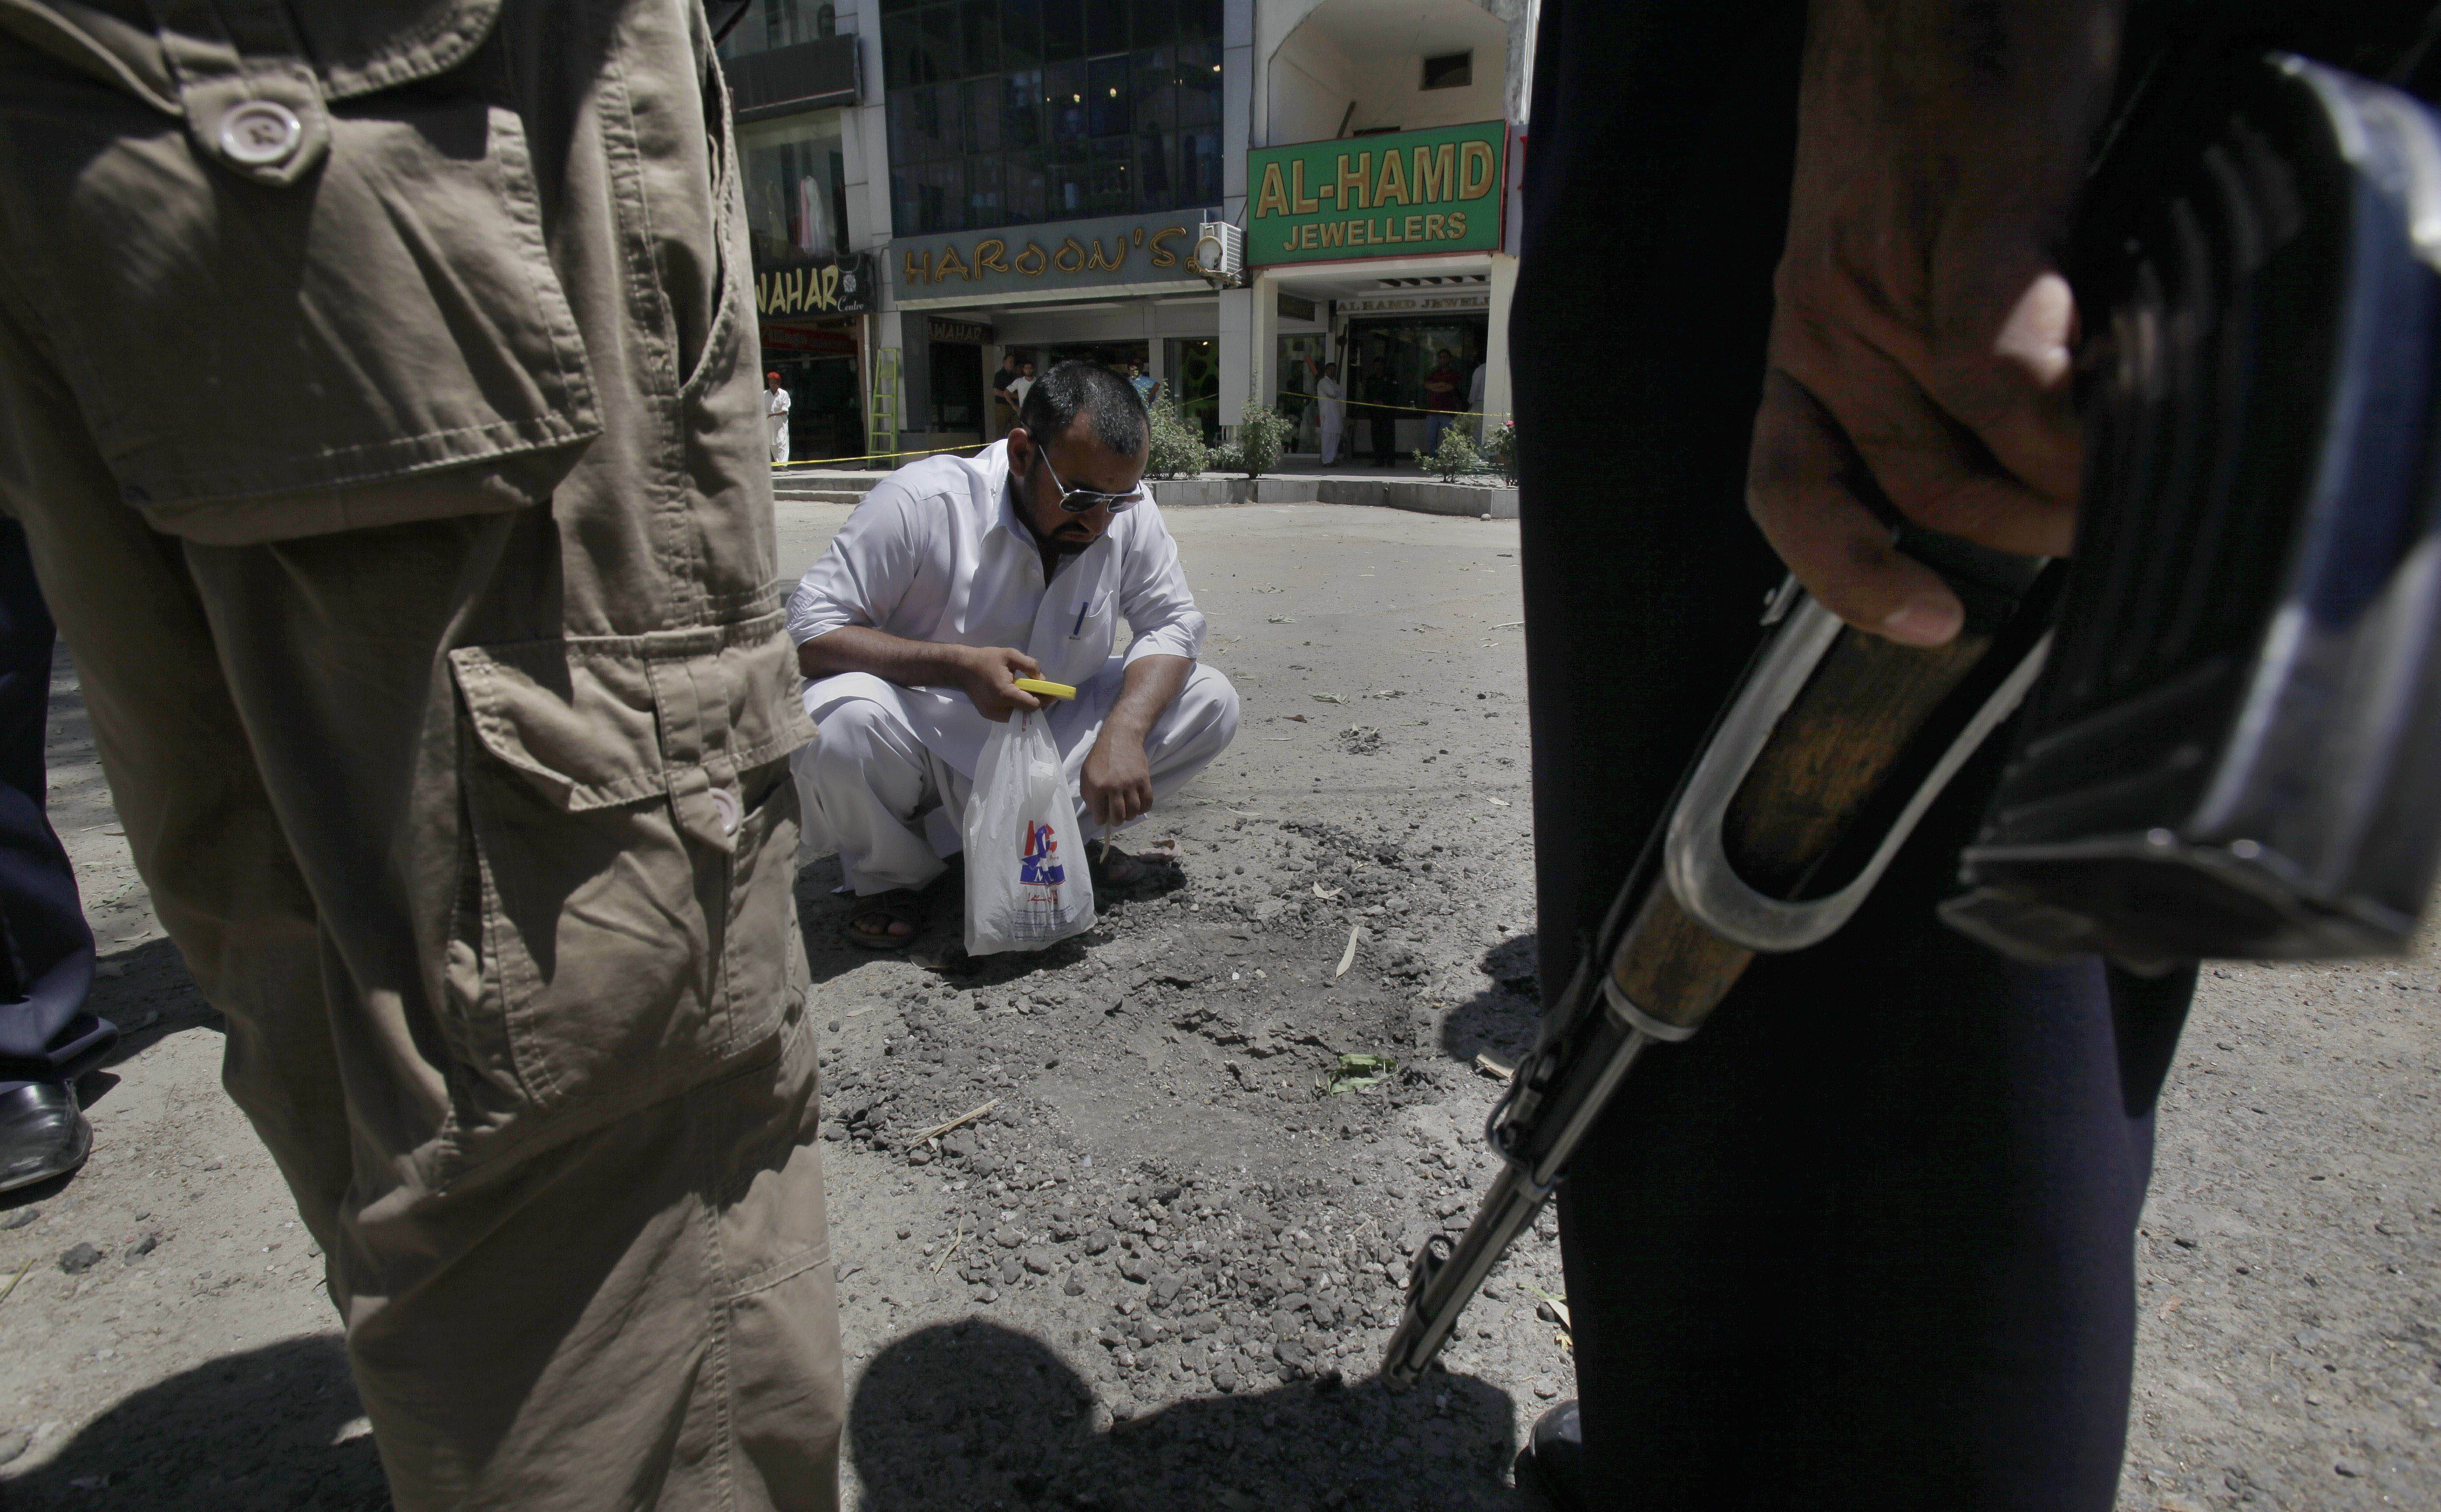 A Pakistani investigator examines a crater caused by a deadly explosion at a market in Islamabad, Pakistan, Saturday, May 24. A bomb exploded in a supermarket parking lot at about 2 a.m. Saturday, killing a guard and wounding a passer-by, police officer Chaudhry Abid said.